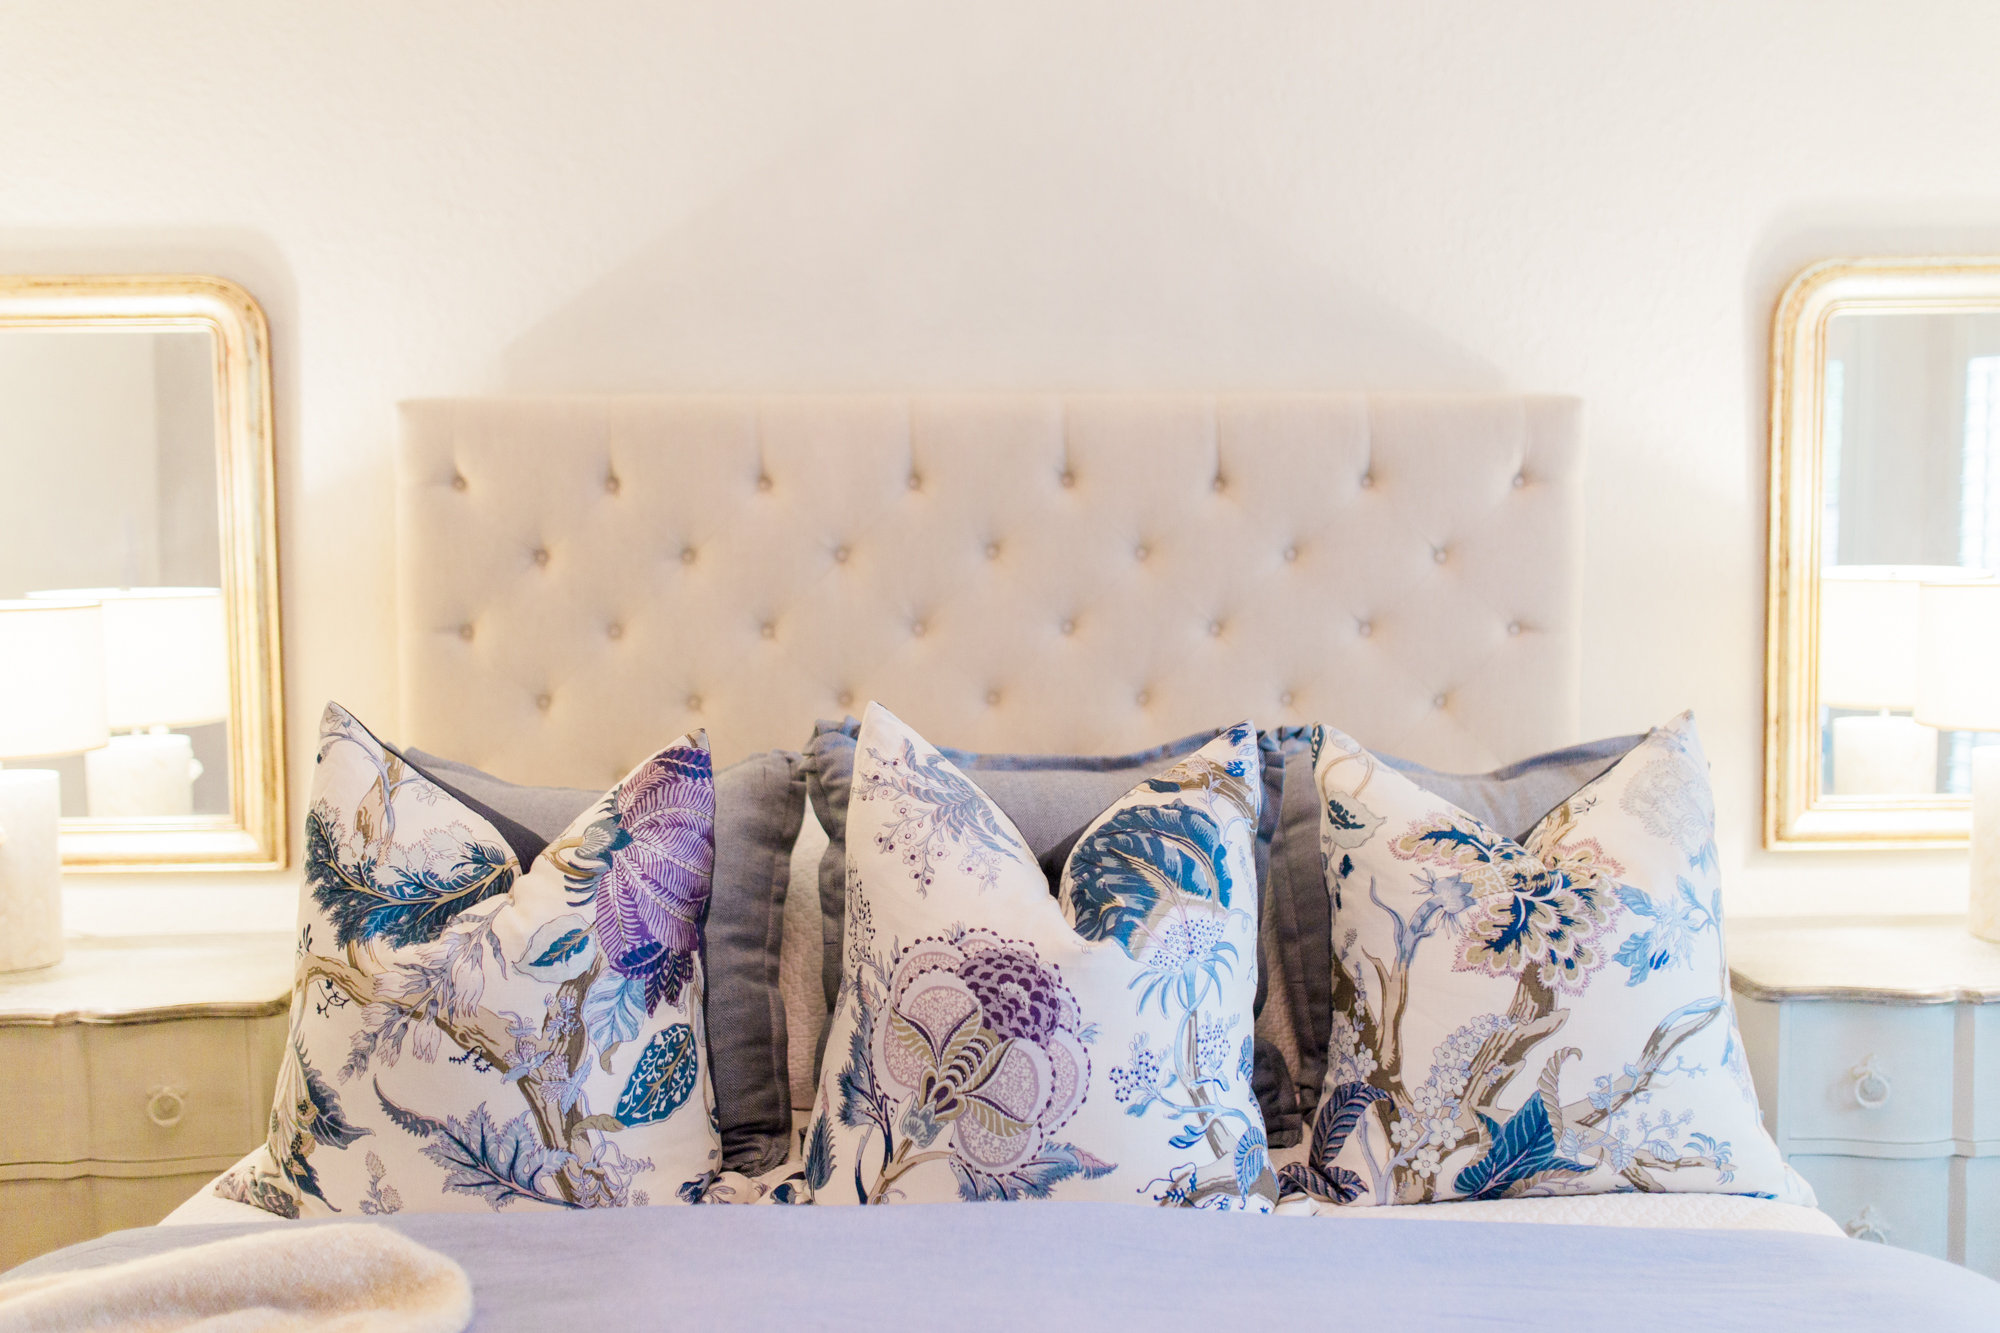 Top 5 Etsy favorites featured by popular Houston life and style blogger, Fancy Ashley: image of floral pillow covers available on Etsy